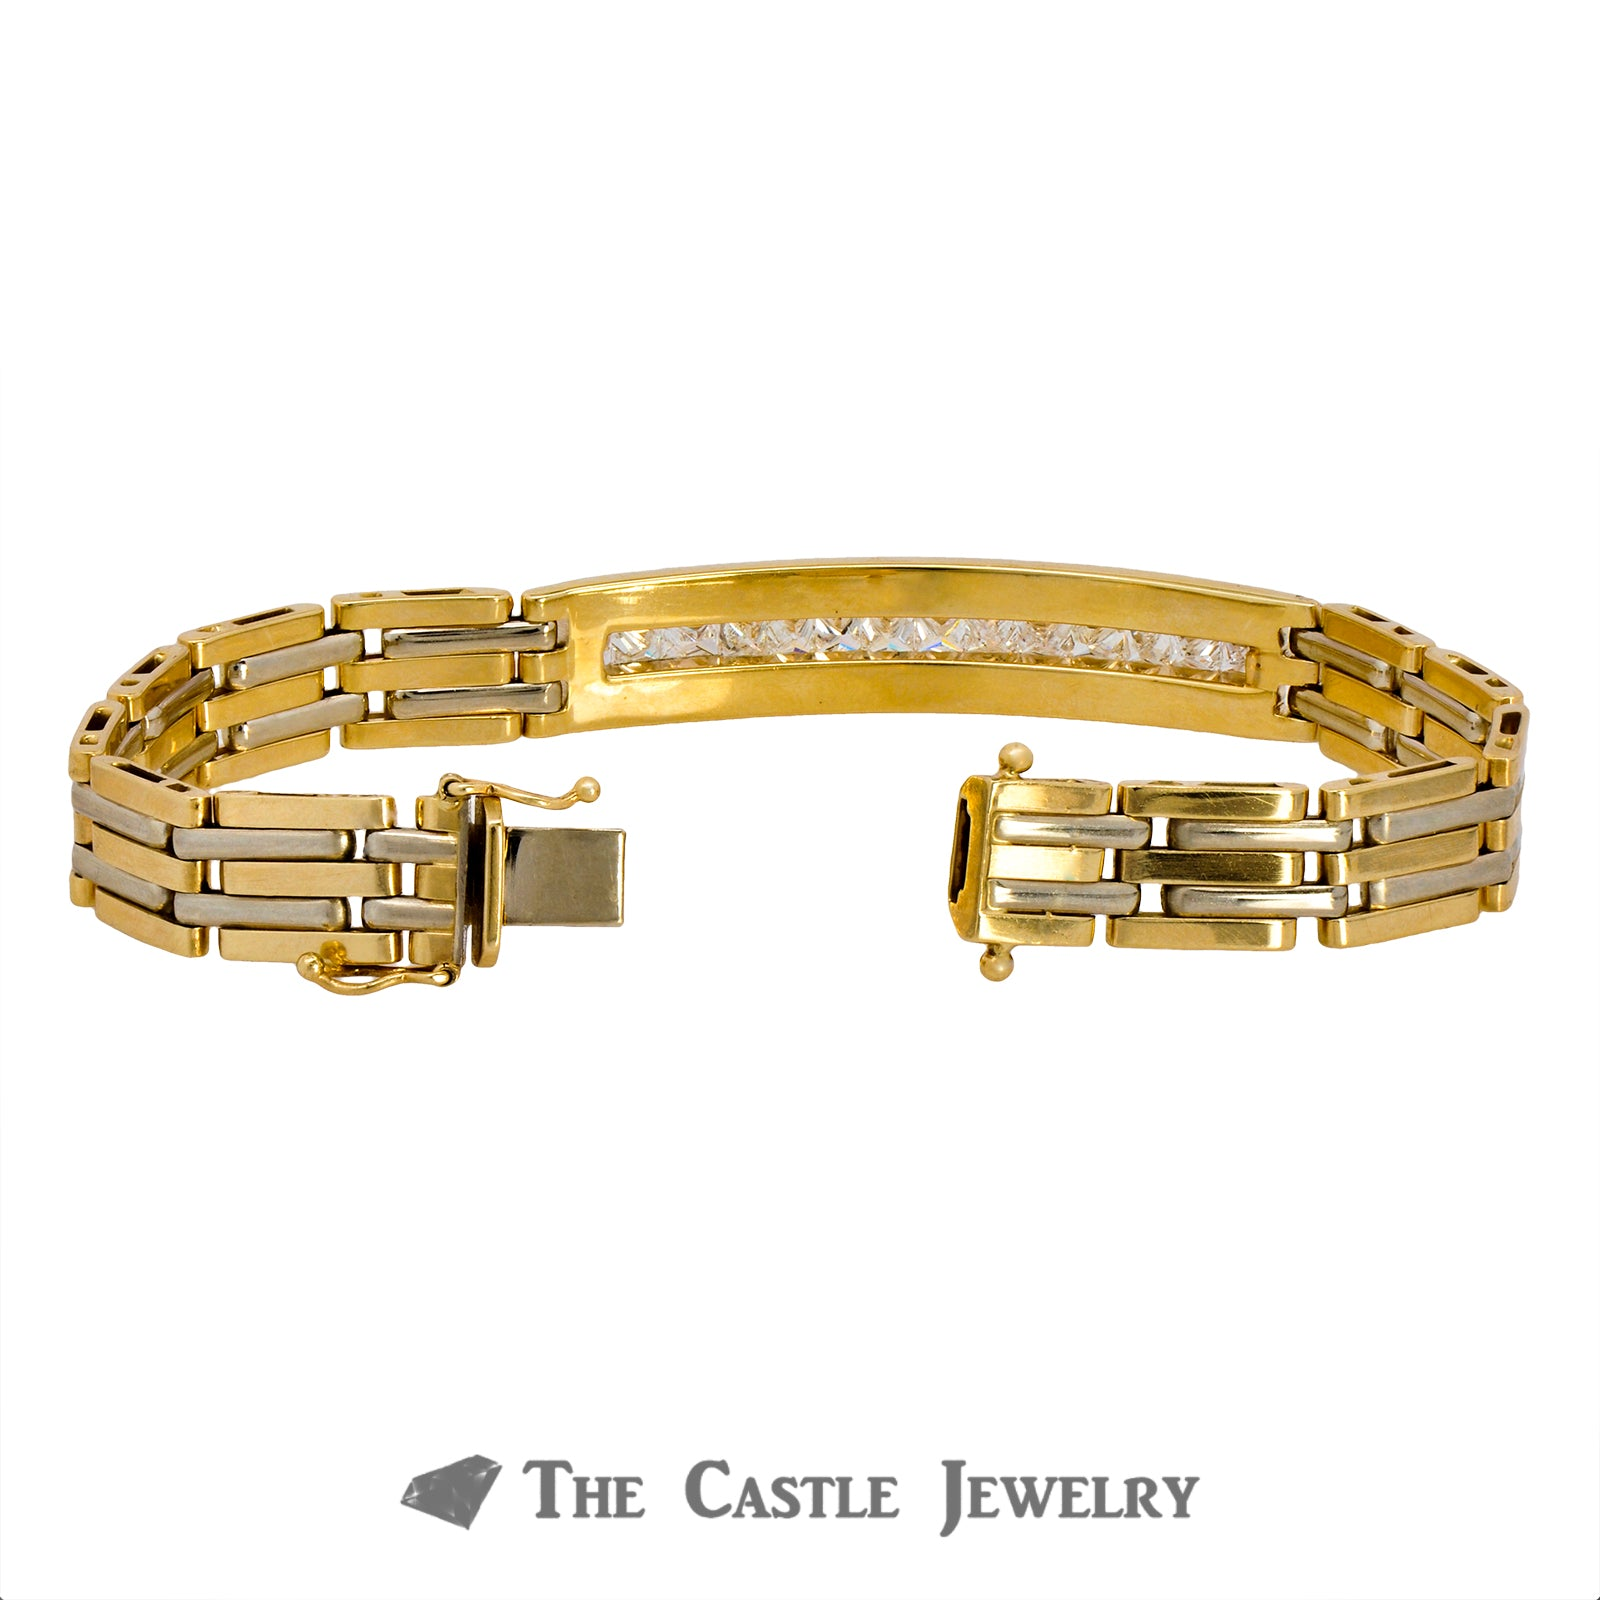 8 Inch Men's Bracelet Crafted in 14K Yellow Gold with Princess Cut Diamonds in Center-1